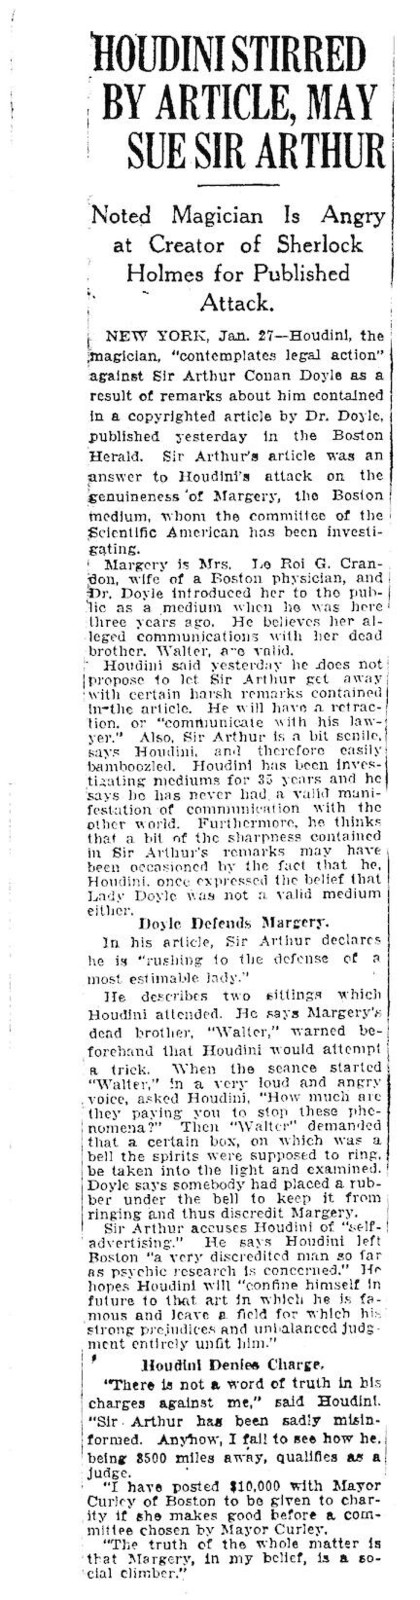 Springfield Union article, January 27, 1925 Houdini stirred by article may sue Sir Arthur